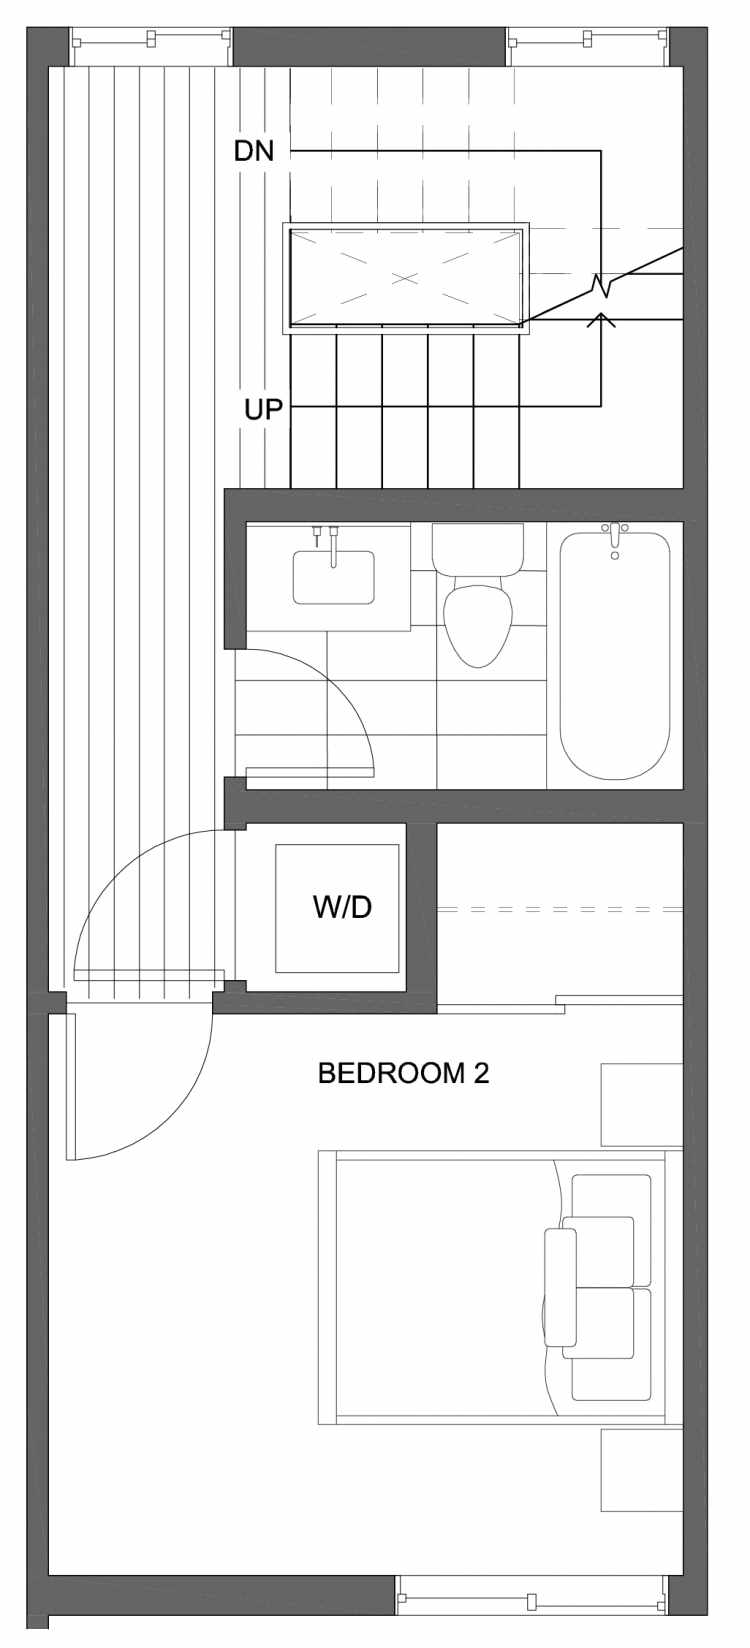 Second Floor Plan of 10429G Alderbrook Pl NW, One of the Jasmine Townhomes in the Greenwood Neighborhood of Seattle